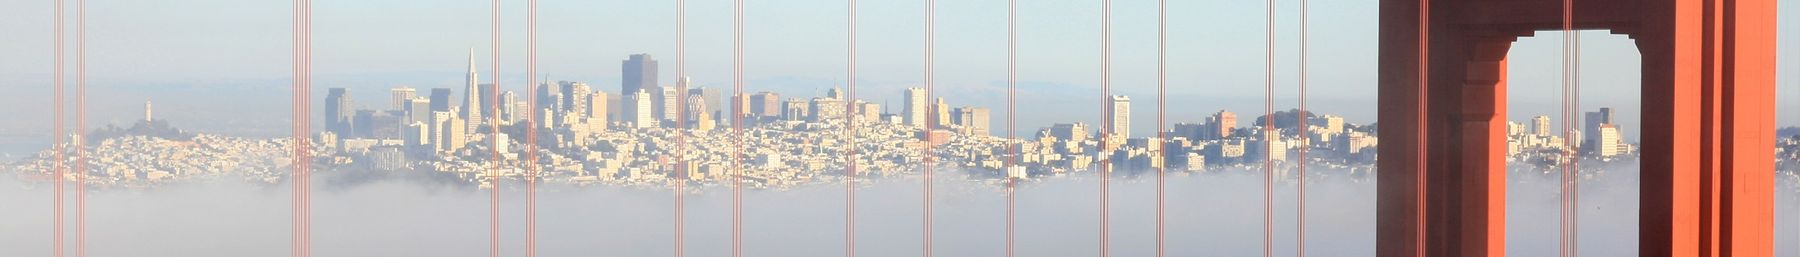 Golden Gate Bridge and San Francisco banner.jpg